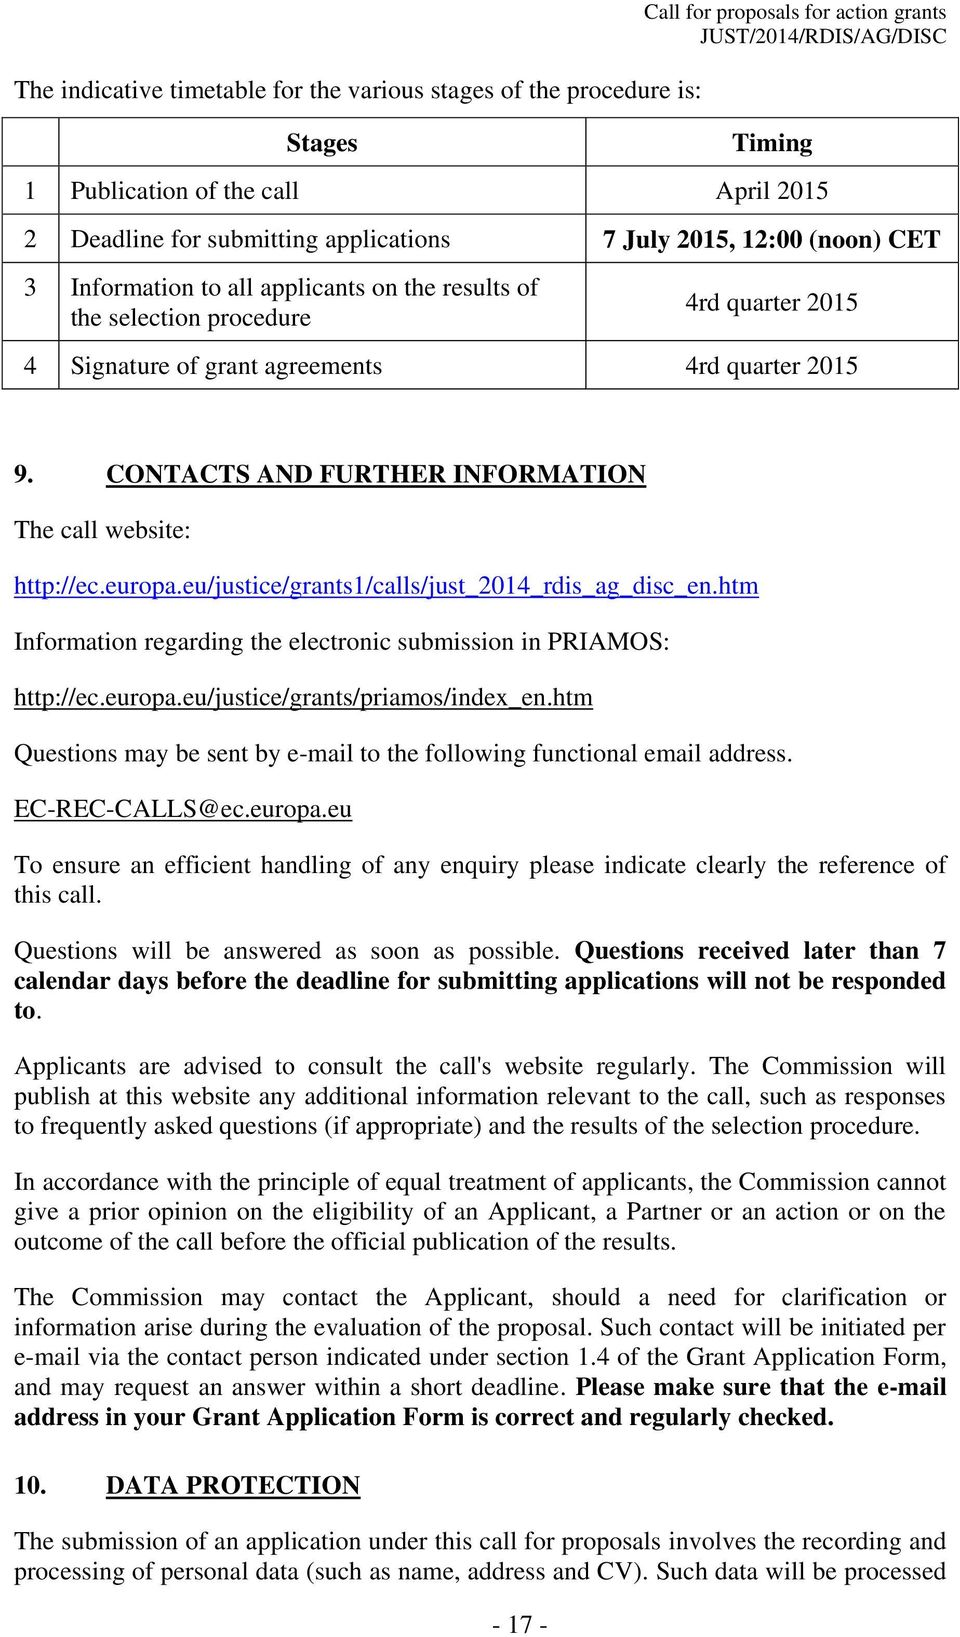 CONTACTS AND FURTHER INFORMATION The call website: http://ec.europa.eu/justice/grants1/calls/just_2014_rdis_ag_disc_en.htm Information regarding the electronic submission in PRIAMOS: http://ec.europa.eu/justice/grants/priamos/index_en.